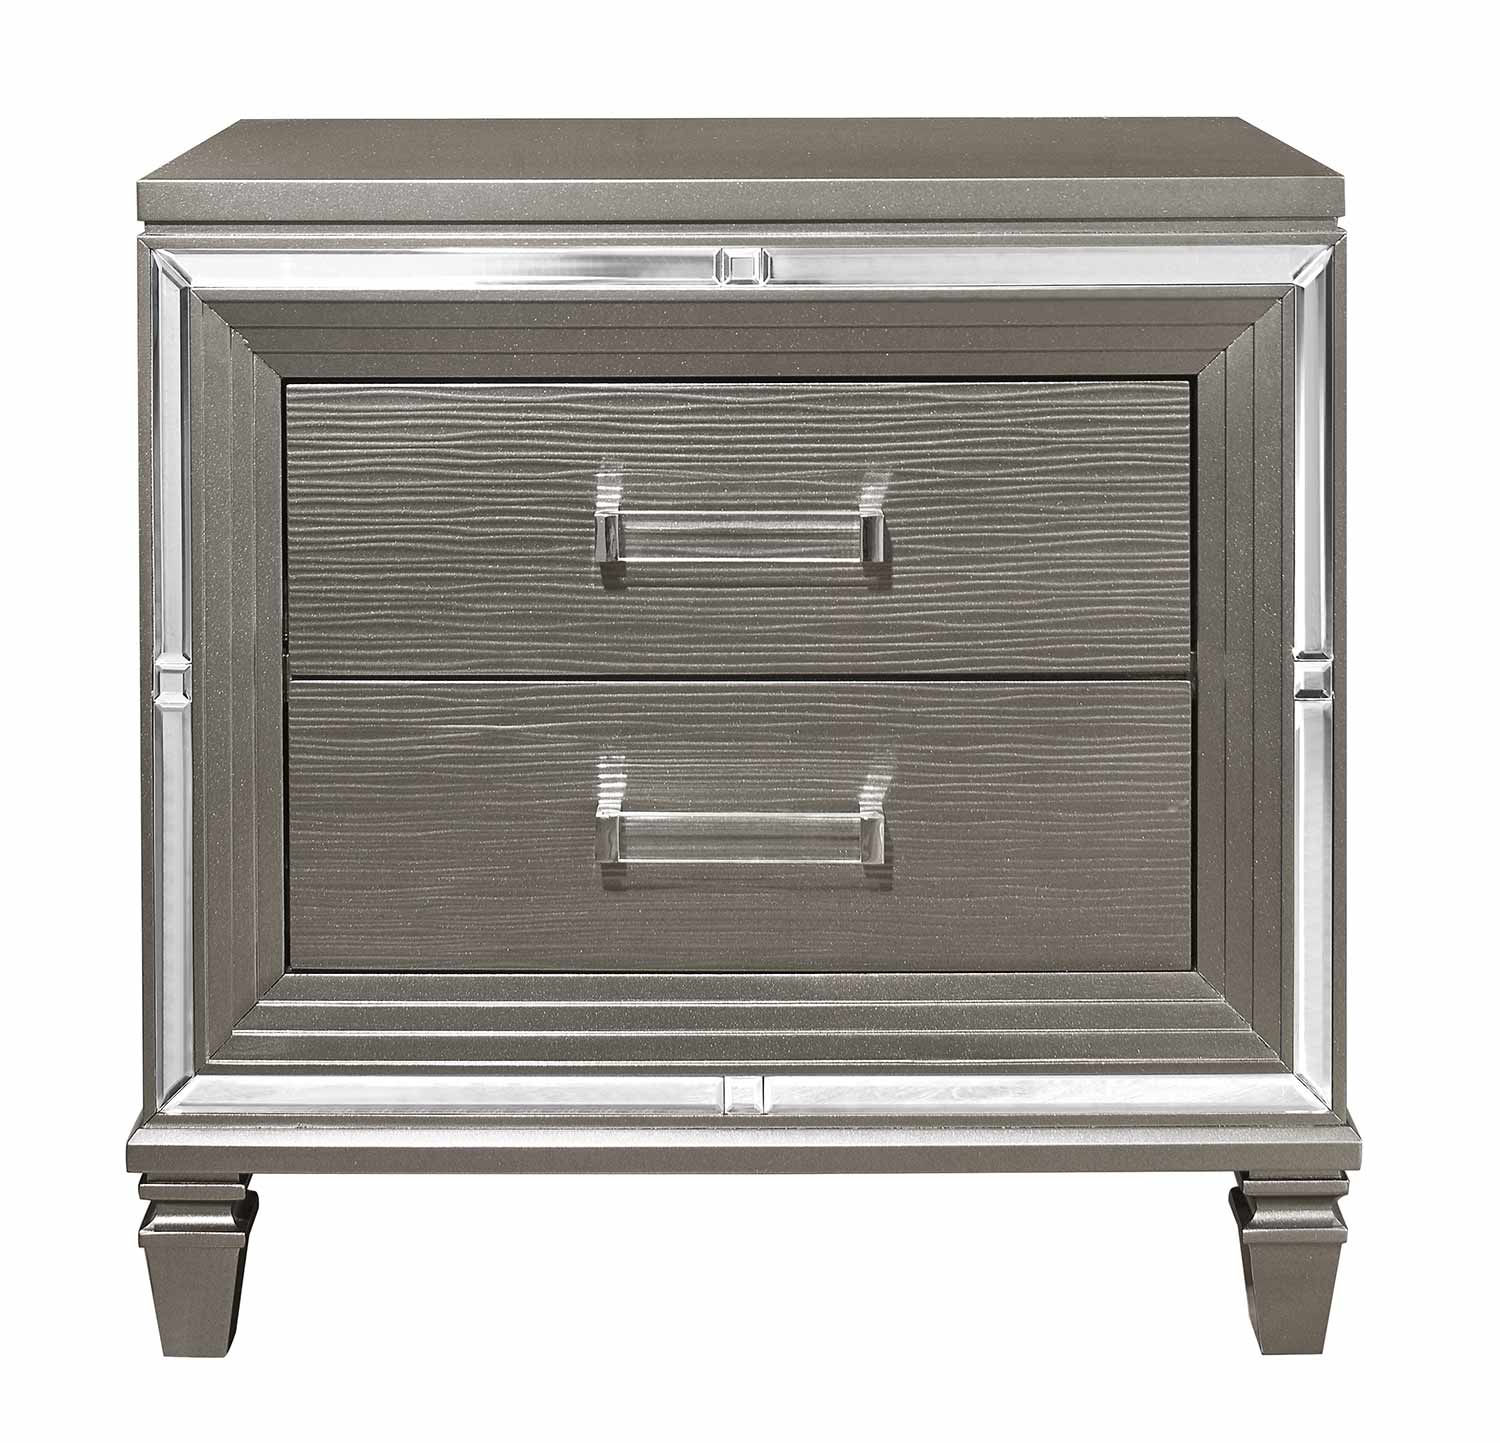 Homelegance Tamsin Night Stand - Silver-Gray Metallic